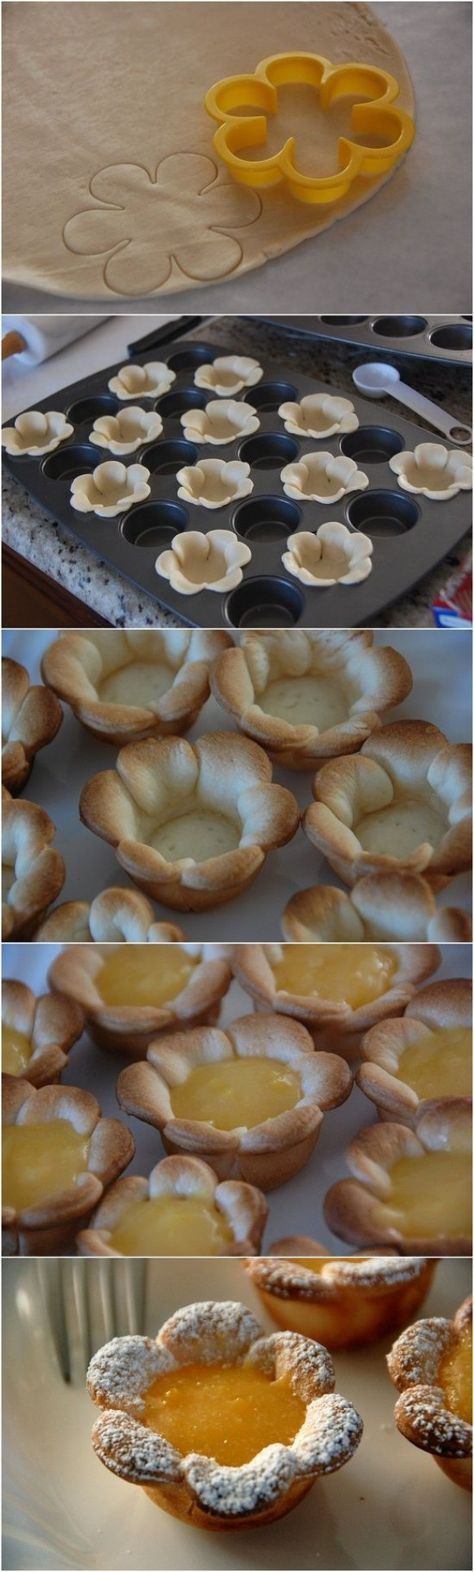 Great idea for Spring, or a wedding/baby shower! #bake #party